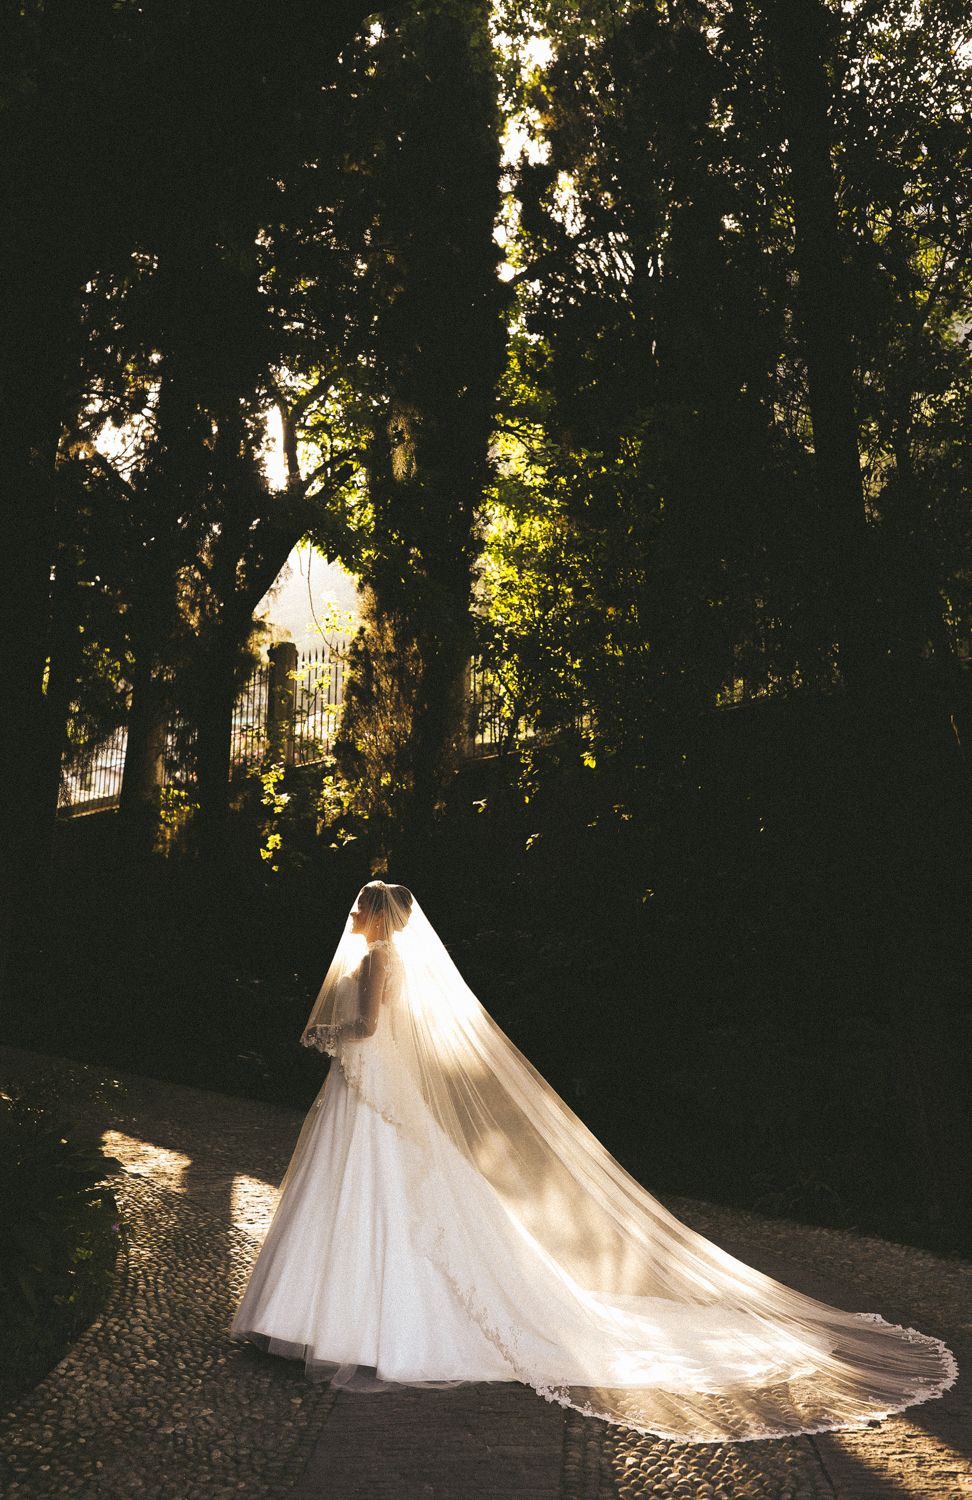 AN ITALIAN DREAM - ROSIE LONDONER'S LAKE GARDA WEDDING ...